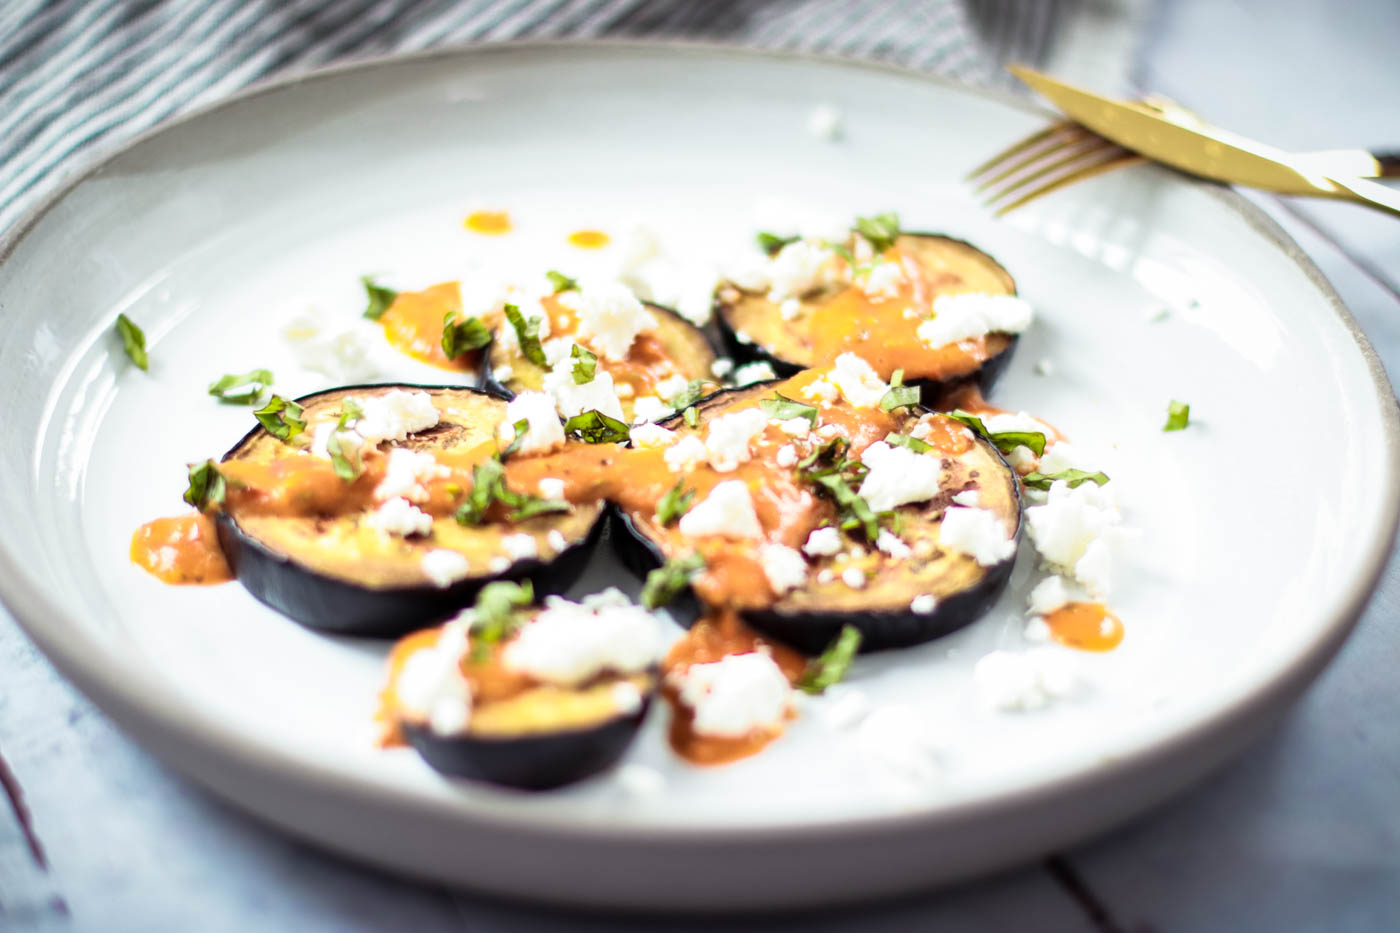 Easy Summer Lunch: Grilled Eggplant with Tomato Sauce, Basil and Feta Cheese